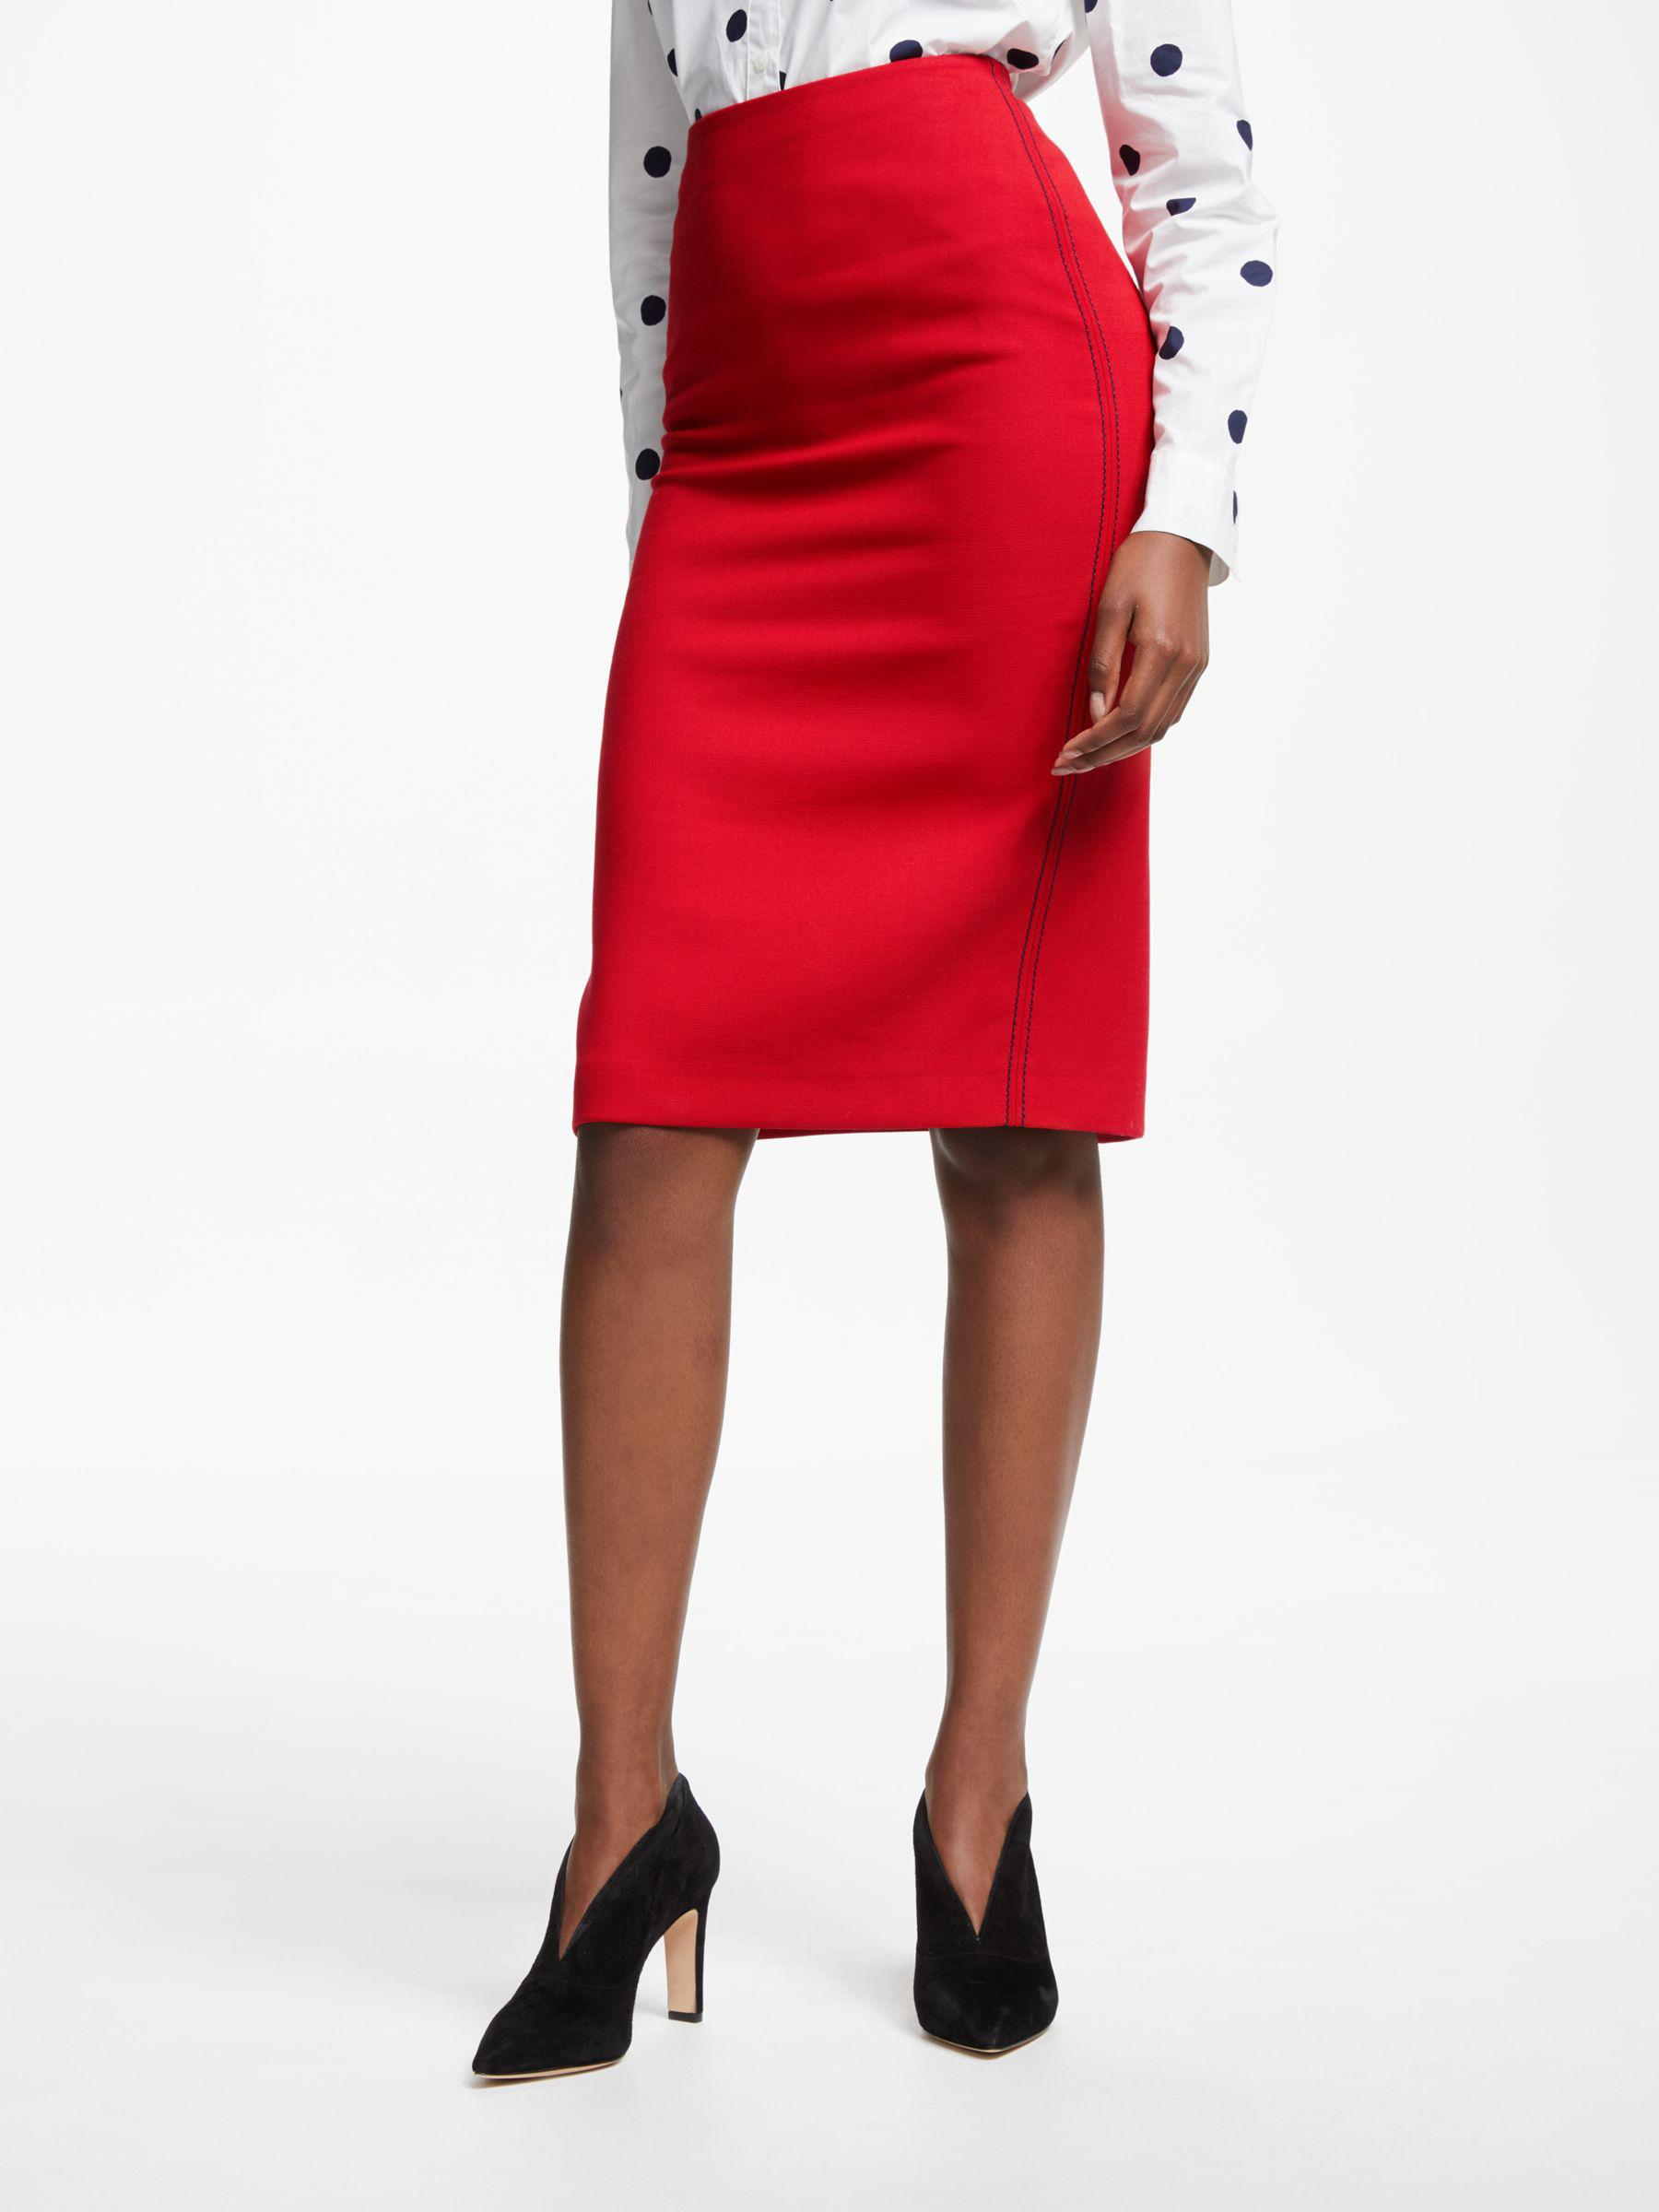 64e84c816 Boden Winsford Pencil Skirt in Red - Lyst